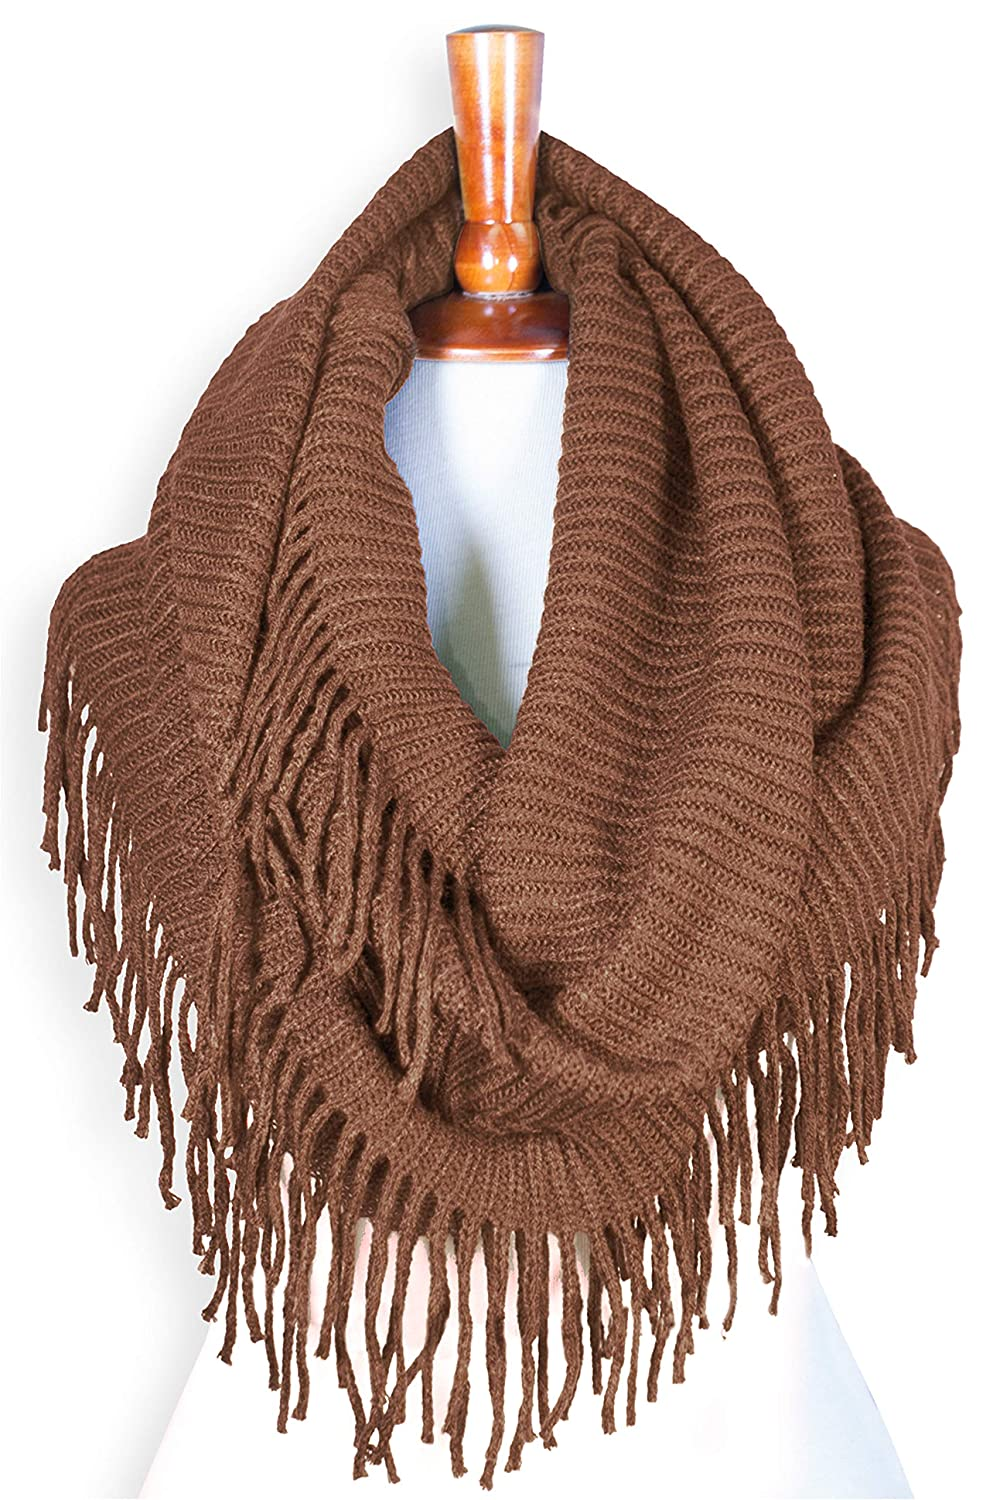 Basico Women Winter Warm Knit Infinity Scarf Tassels Soft Shawl Various Colors